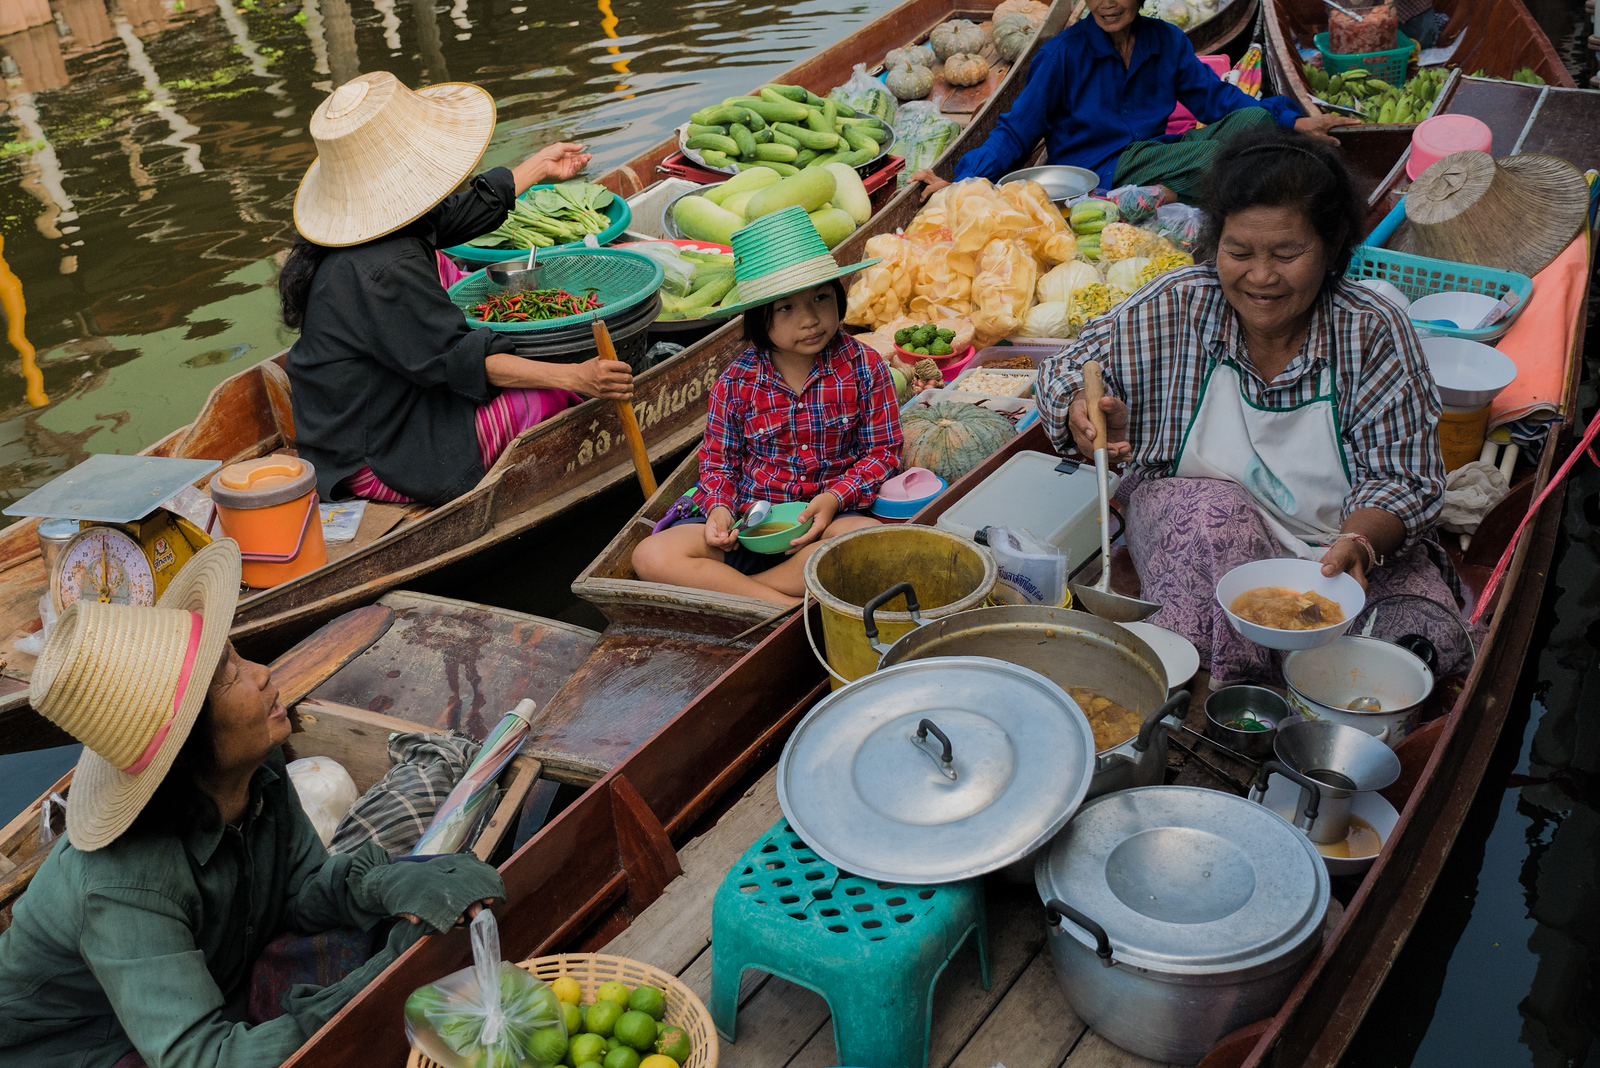 Vendors at the Tha Kha Floating Market in Thailand